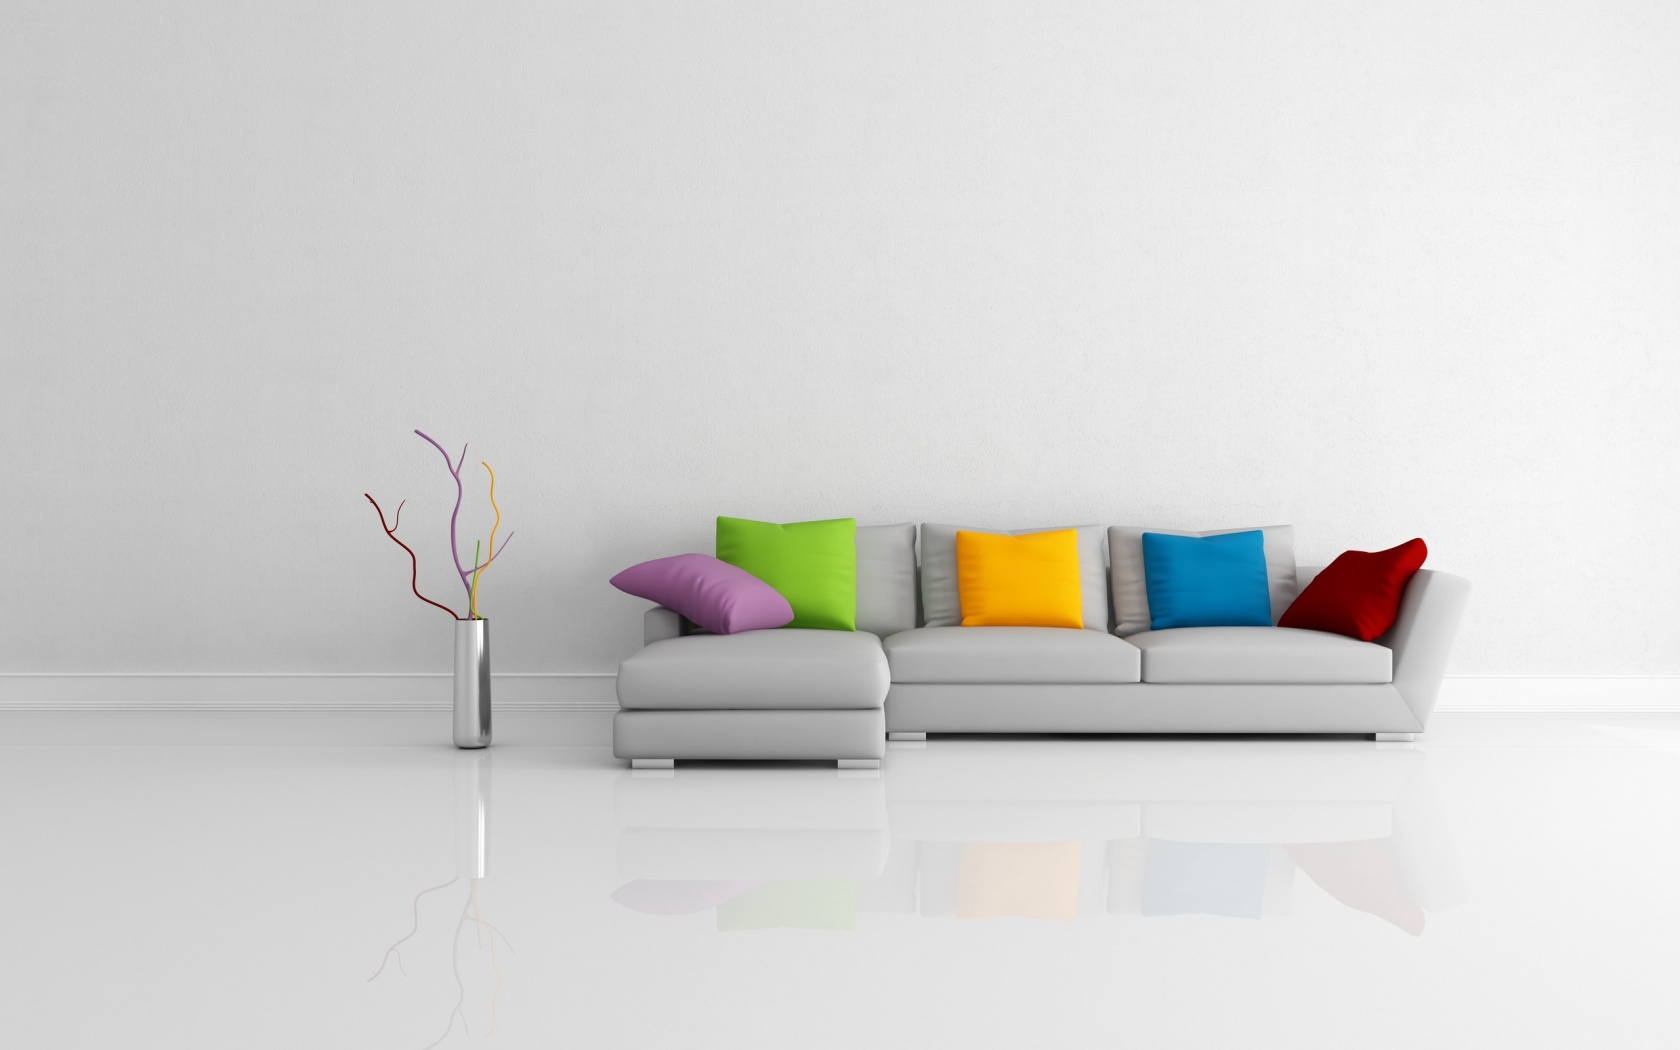 interior design home decor jobs with View Modern Sofa Colorful Pillows 1680x1050 on Design Milk Visits Rit besides Cute Outfit likewise 102175485266745126 also Interiors For Memory Care further 5486564987.